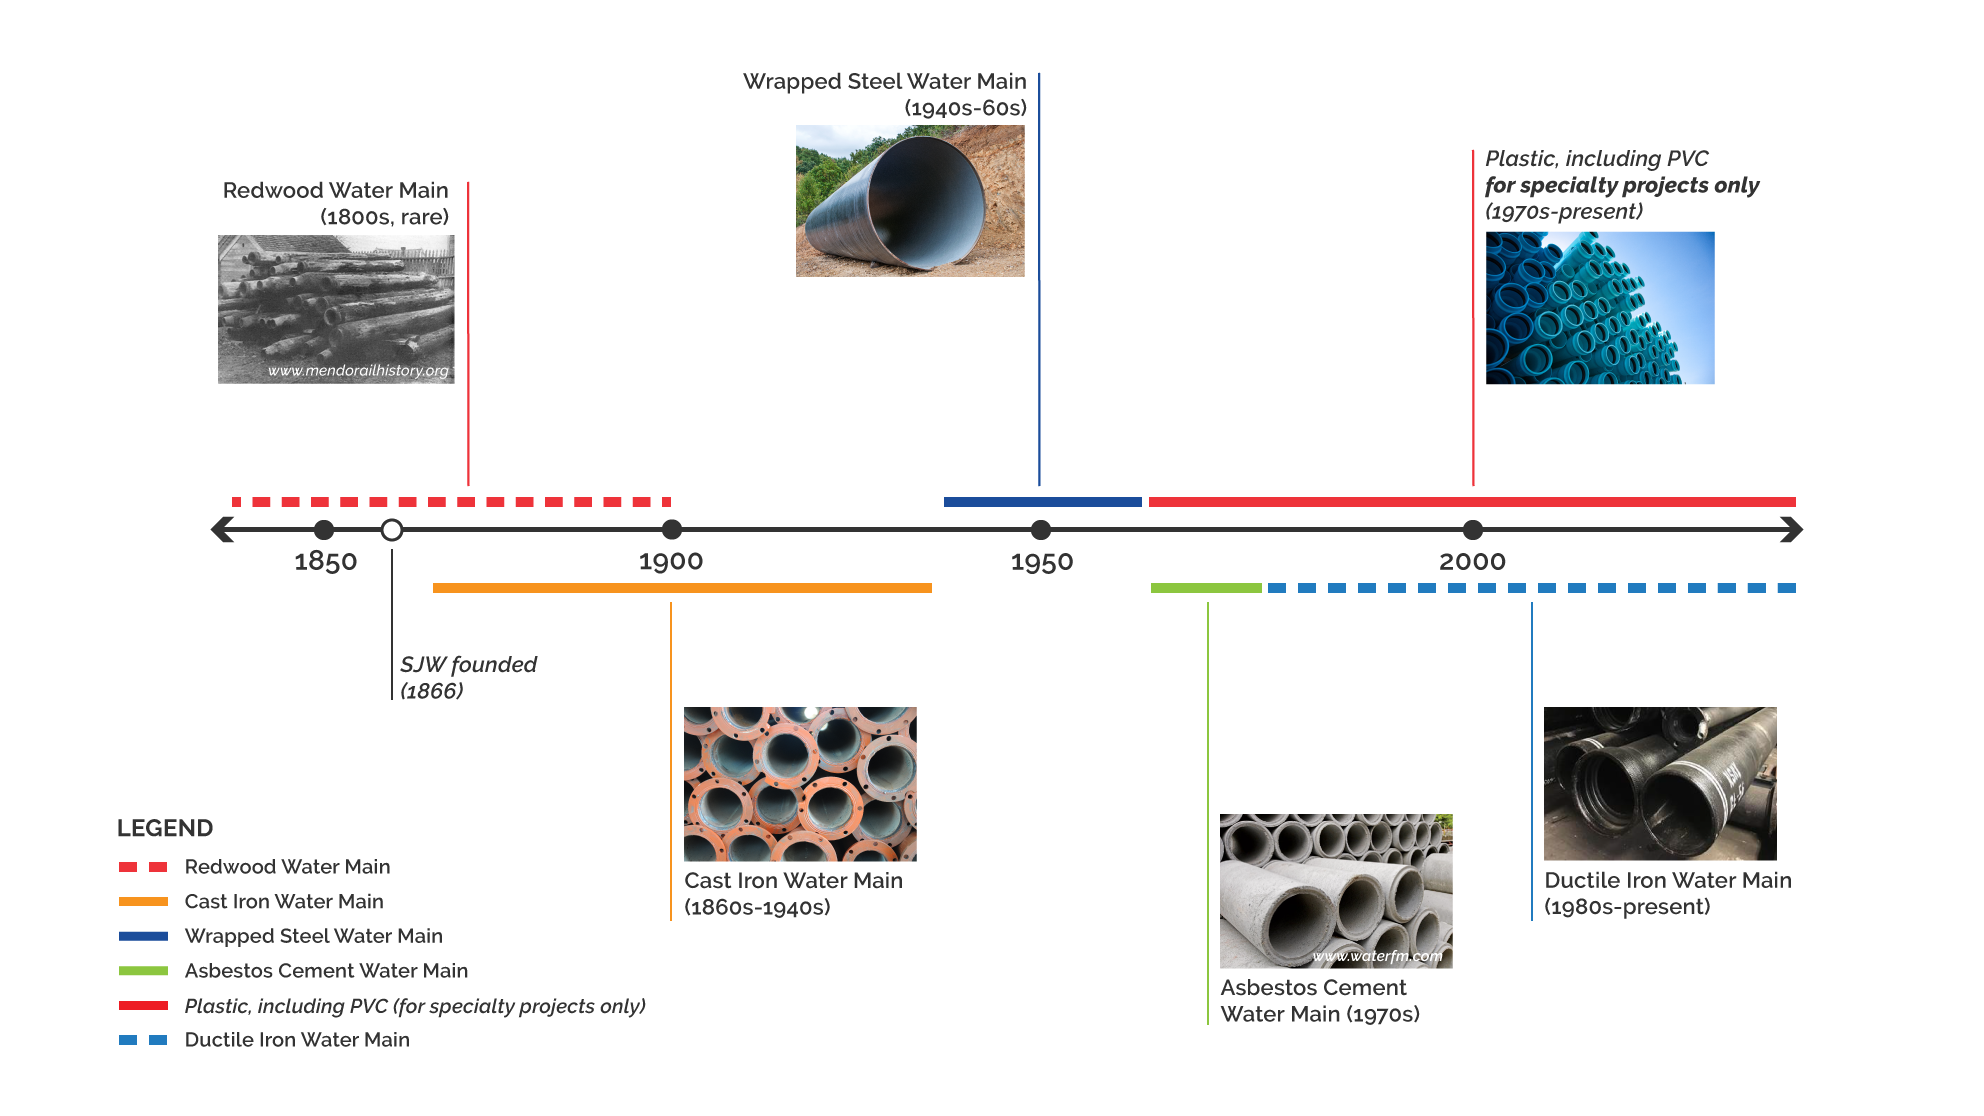 Timeline showing history of pipe materials used 1850-present